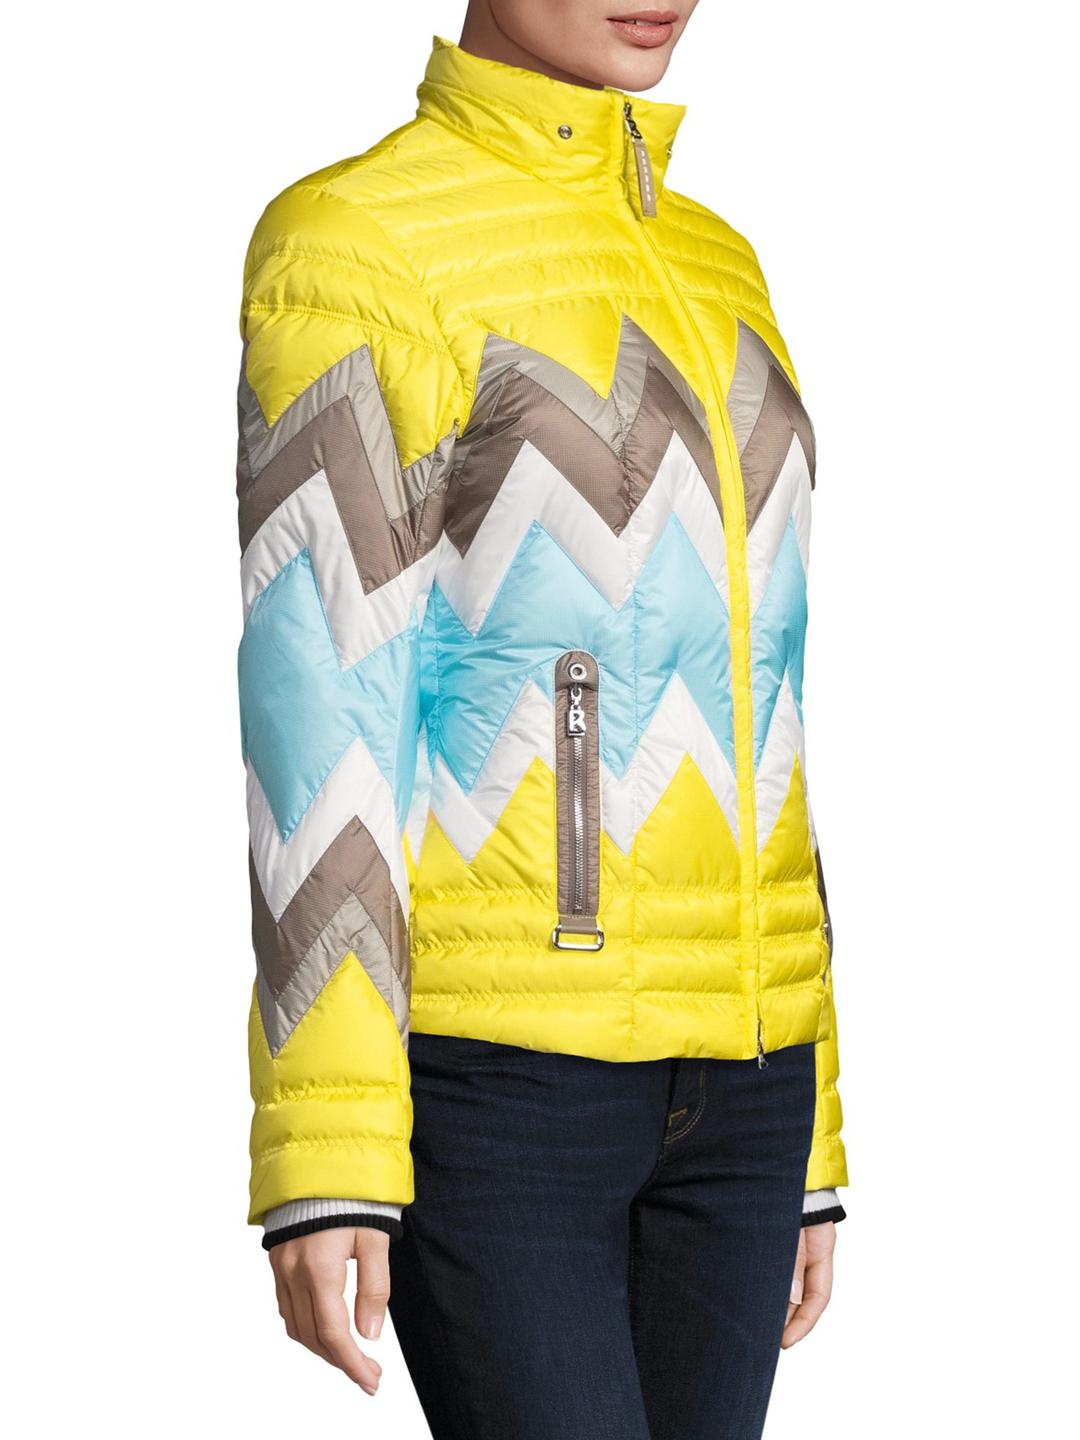 Bogner Nara-d Puffer Hooded Jacket in Yellow - Lyst a7e36ac0e